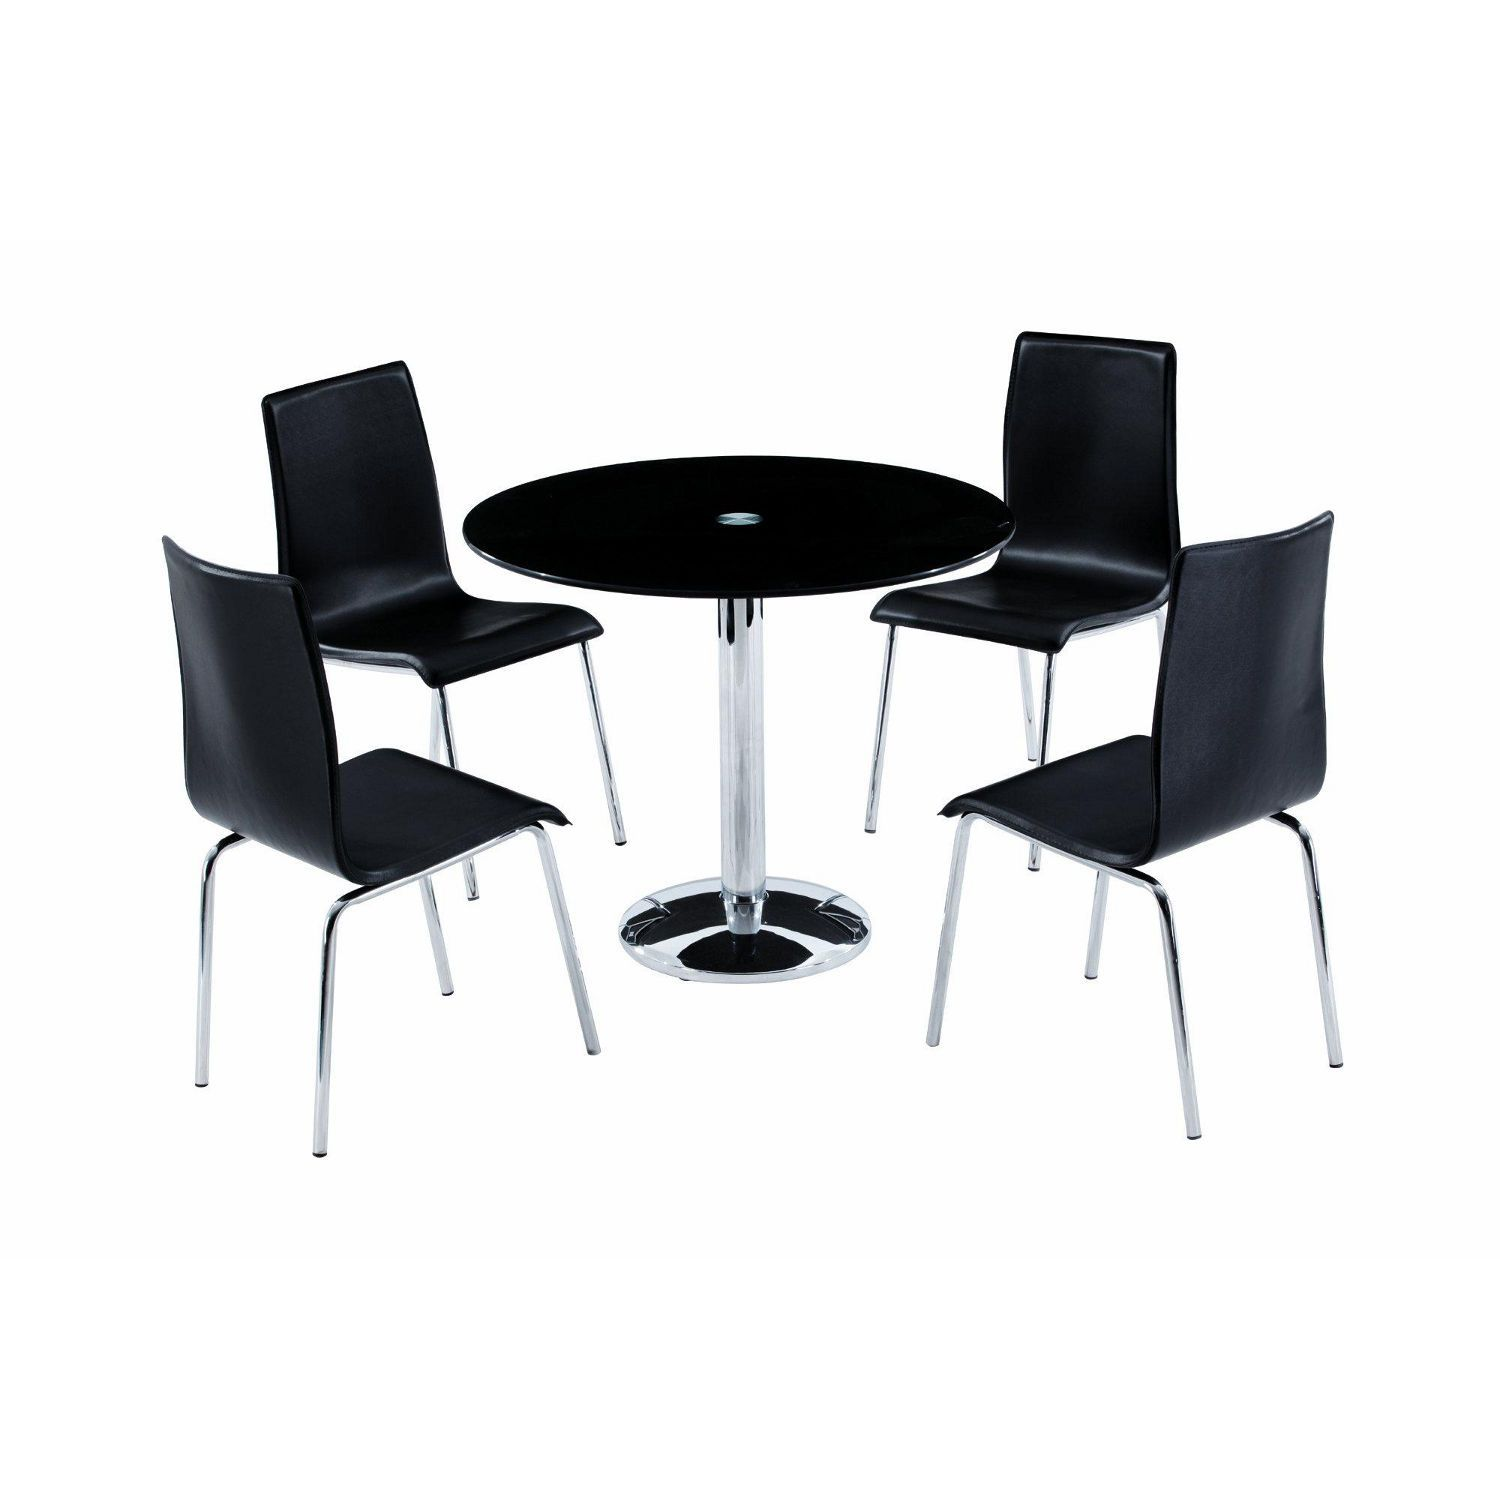 White Round Dining Table 4 Legs round black glass dining table with single legs and four plastic